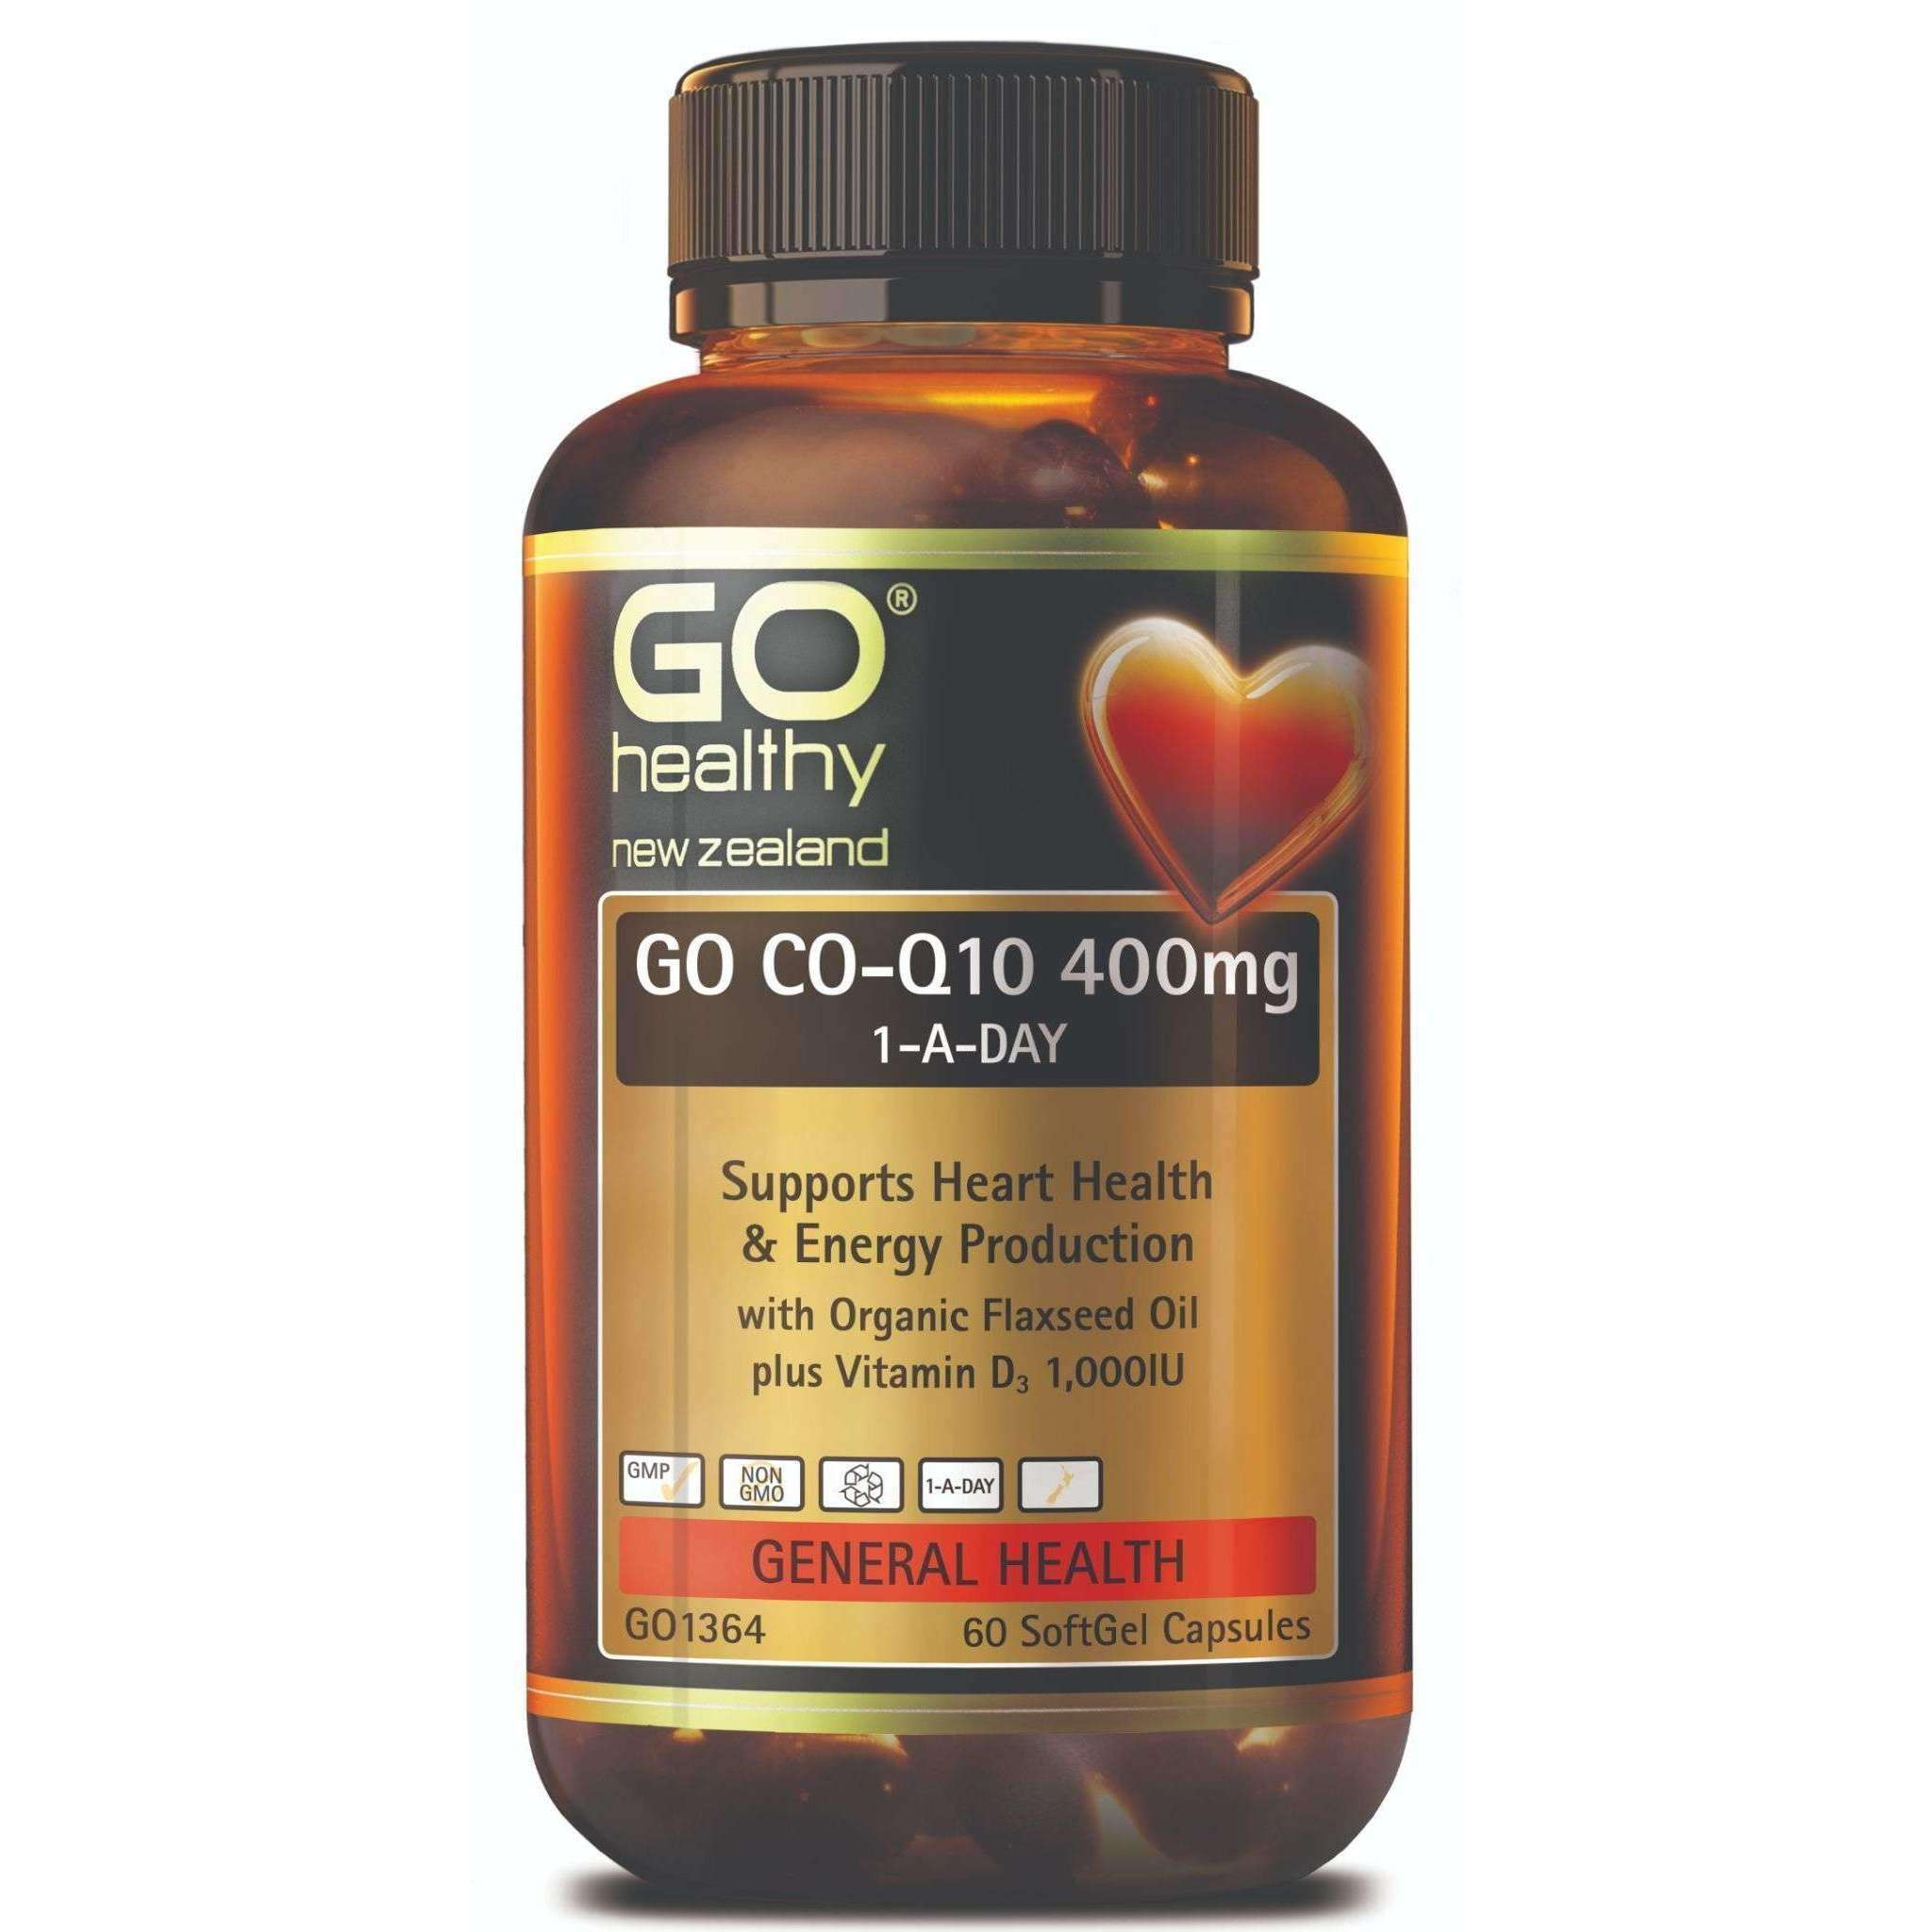 Go Co-Q10 400mg 1-A-Day